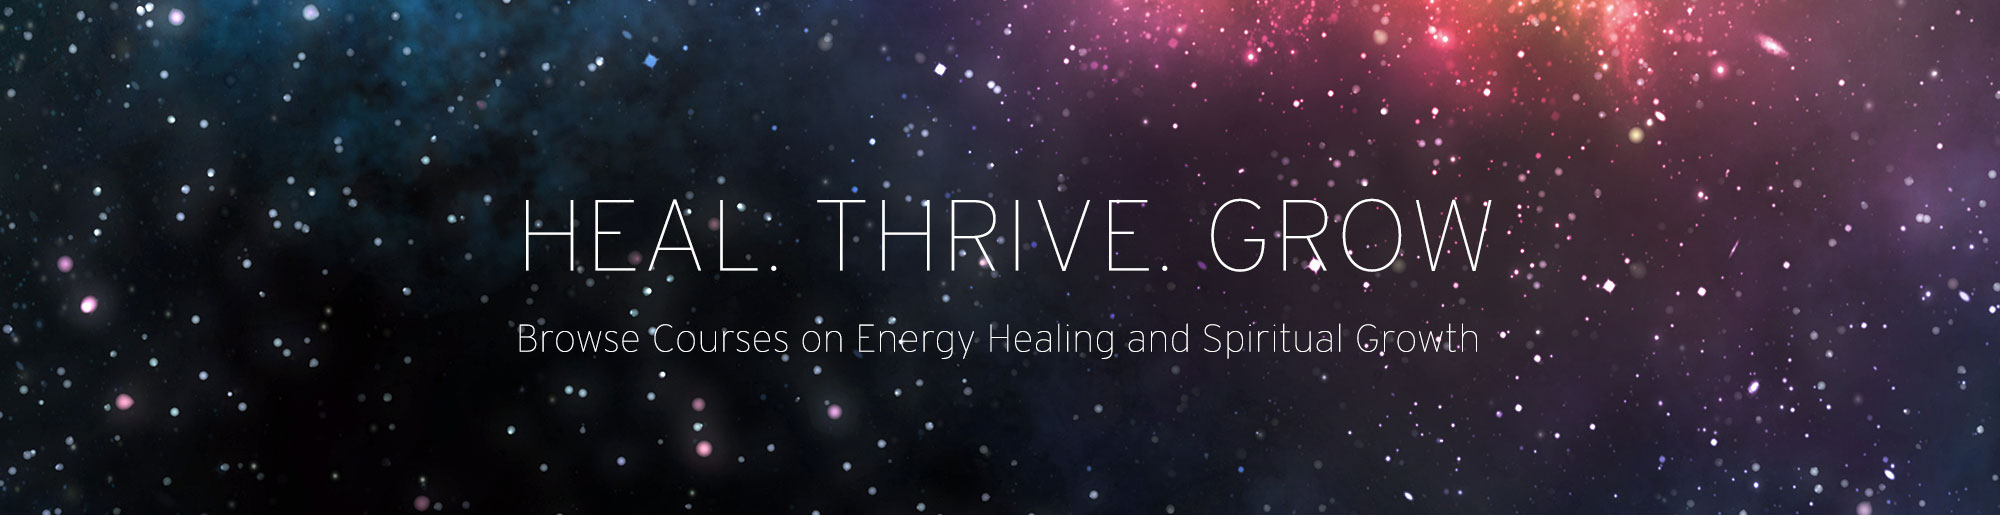 heal,-thrive,-grow4